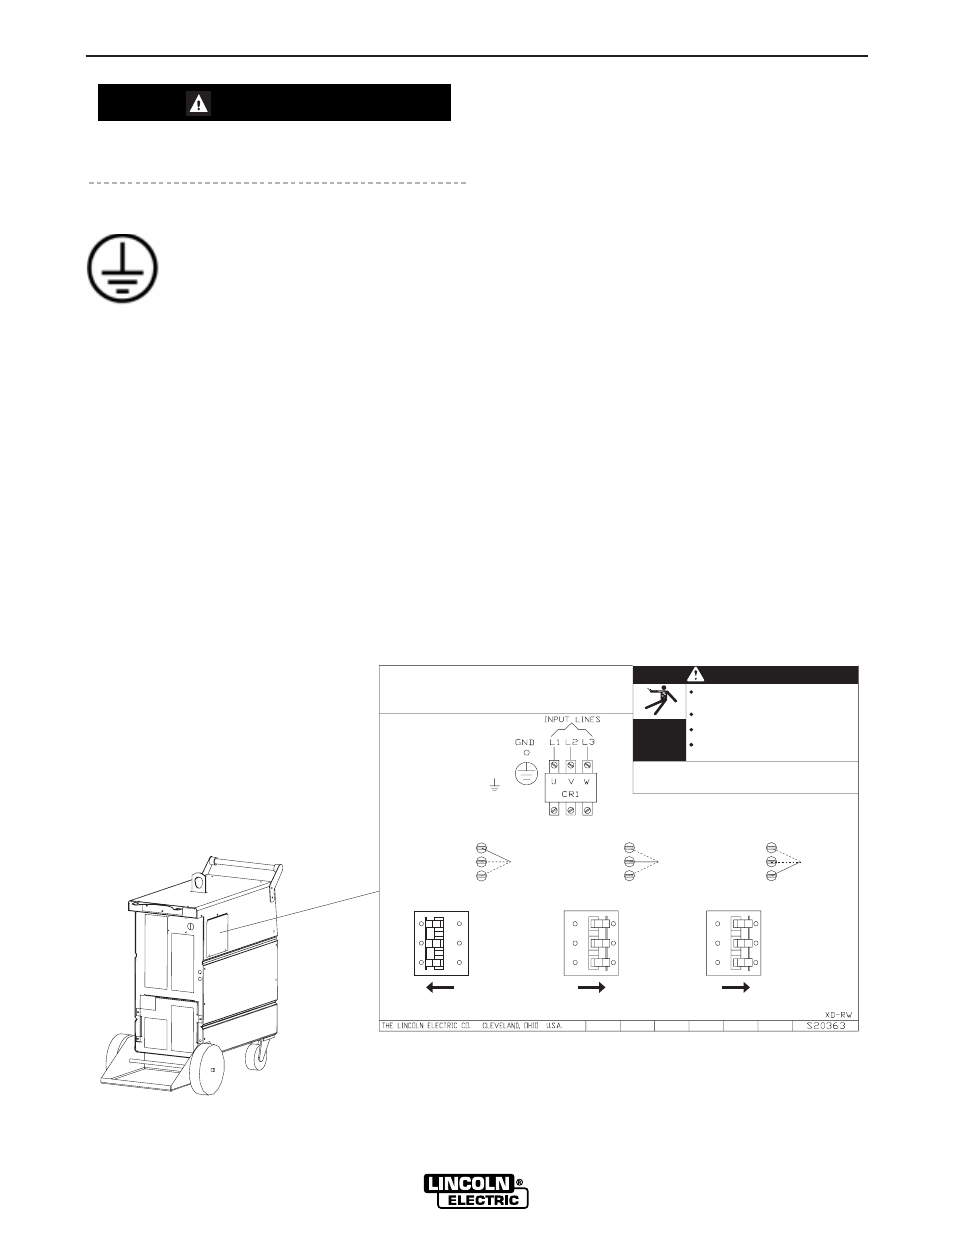 Installation Caution Ground Connections Lincoln Electric 460v To 230v Wiring Diagram Invertec Power Wave 450 10391 User Manual Page 10 53